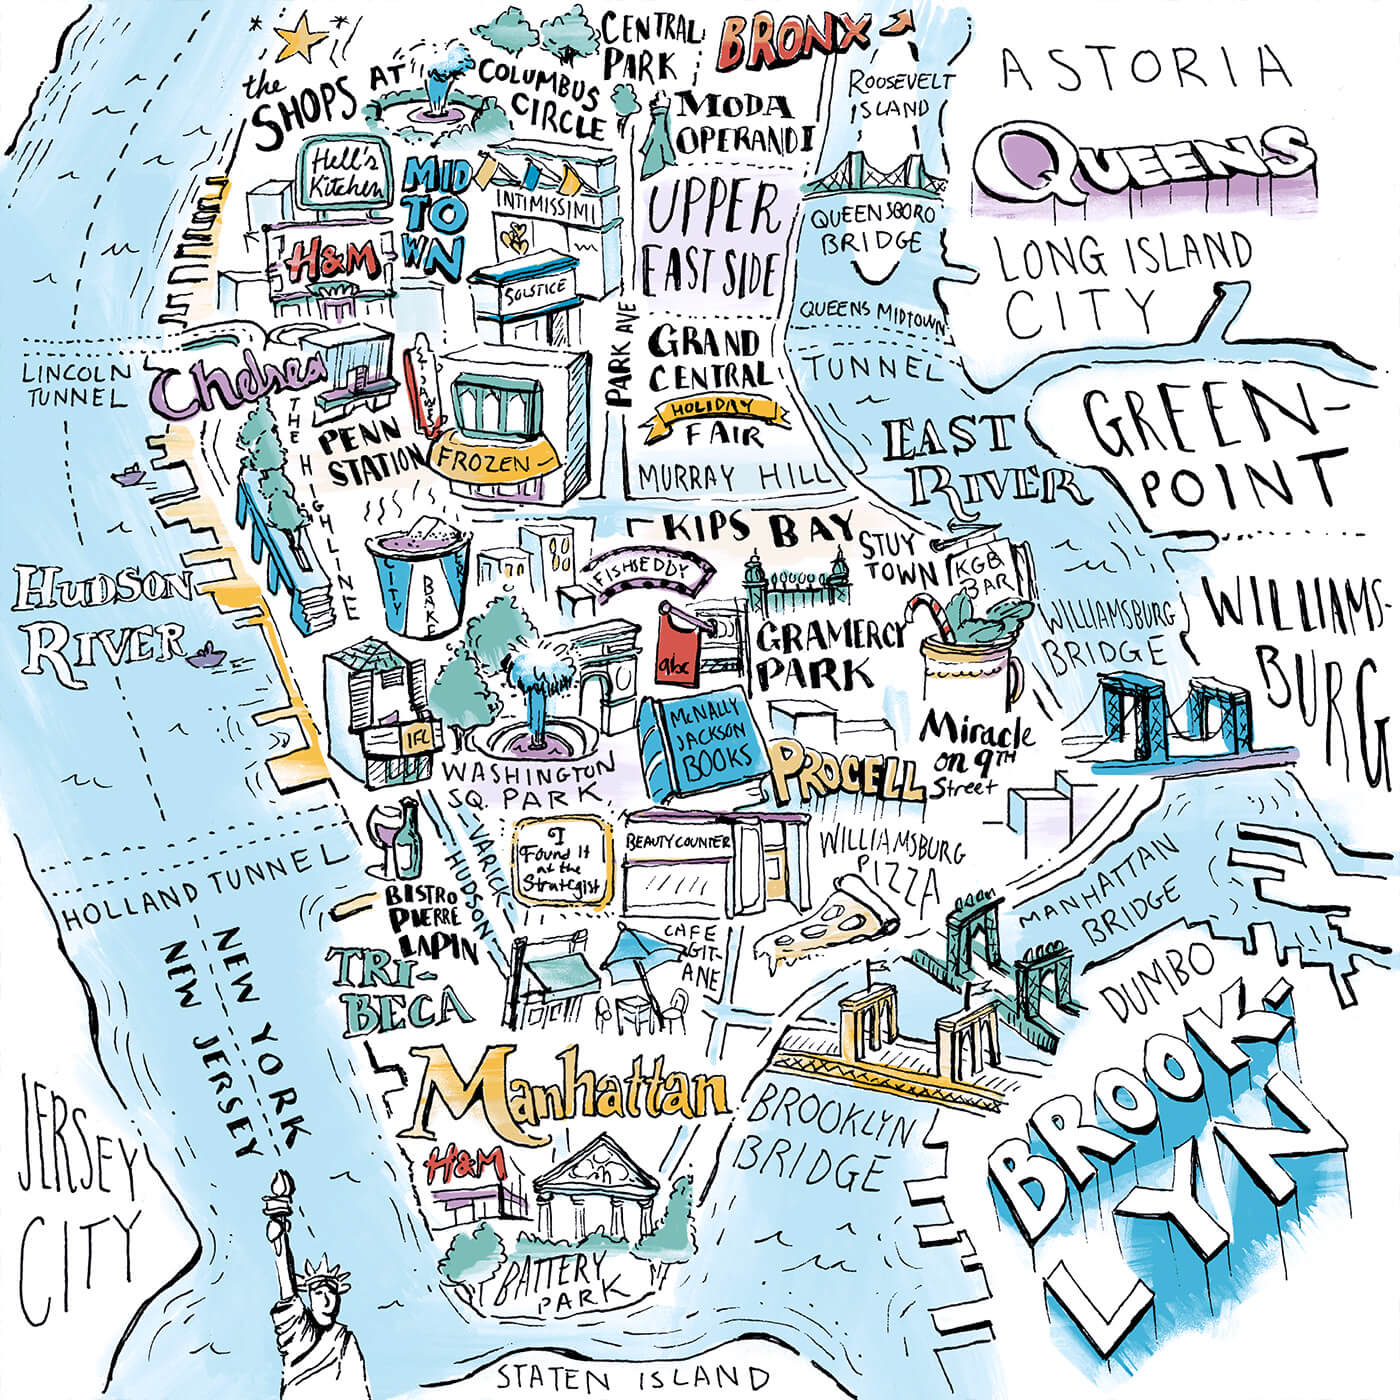 New York Magazine, Holiday Maps - Interactive, hand-drawn maps that follow seven of New York's friends and staff around the city as they share their favorite holiday destinations and shops to celebrate the season.View Project →